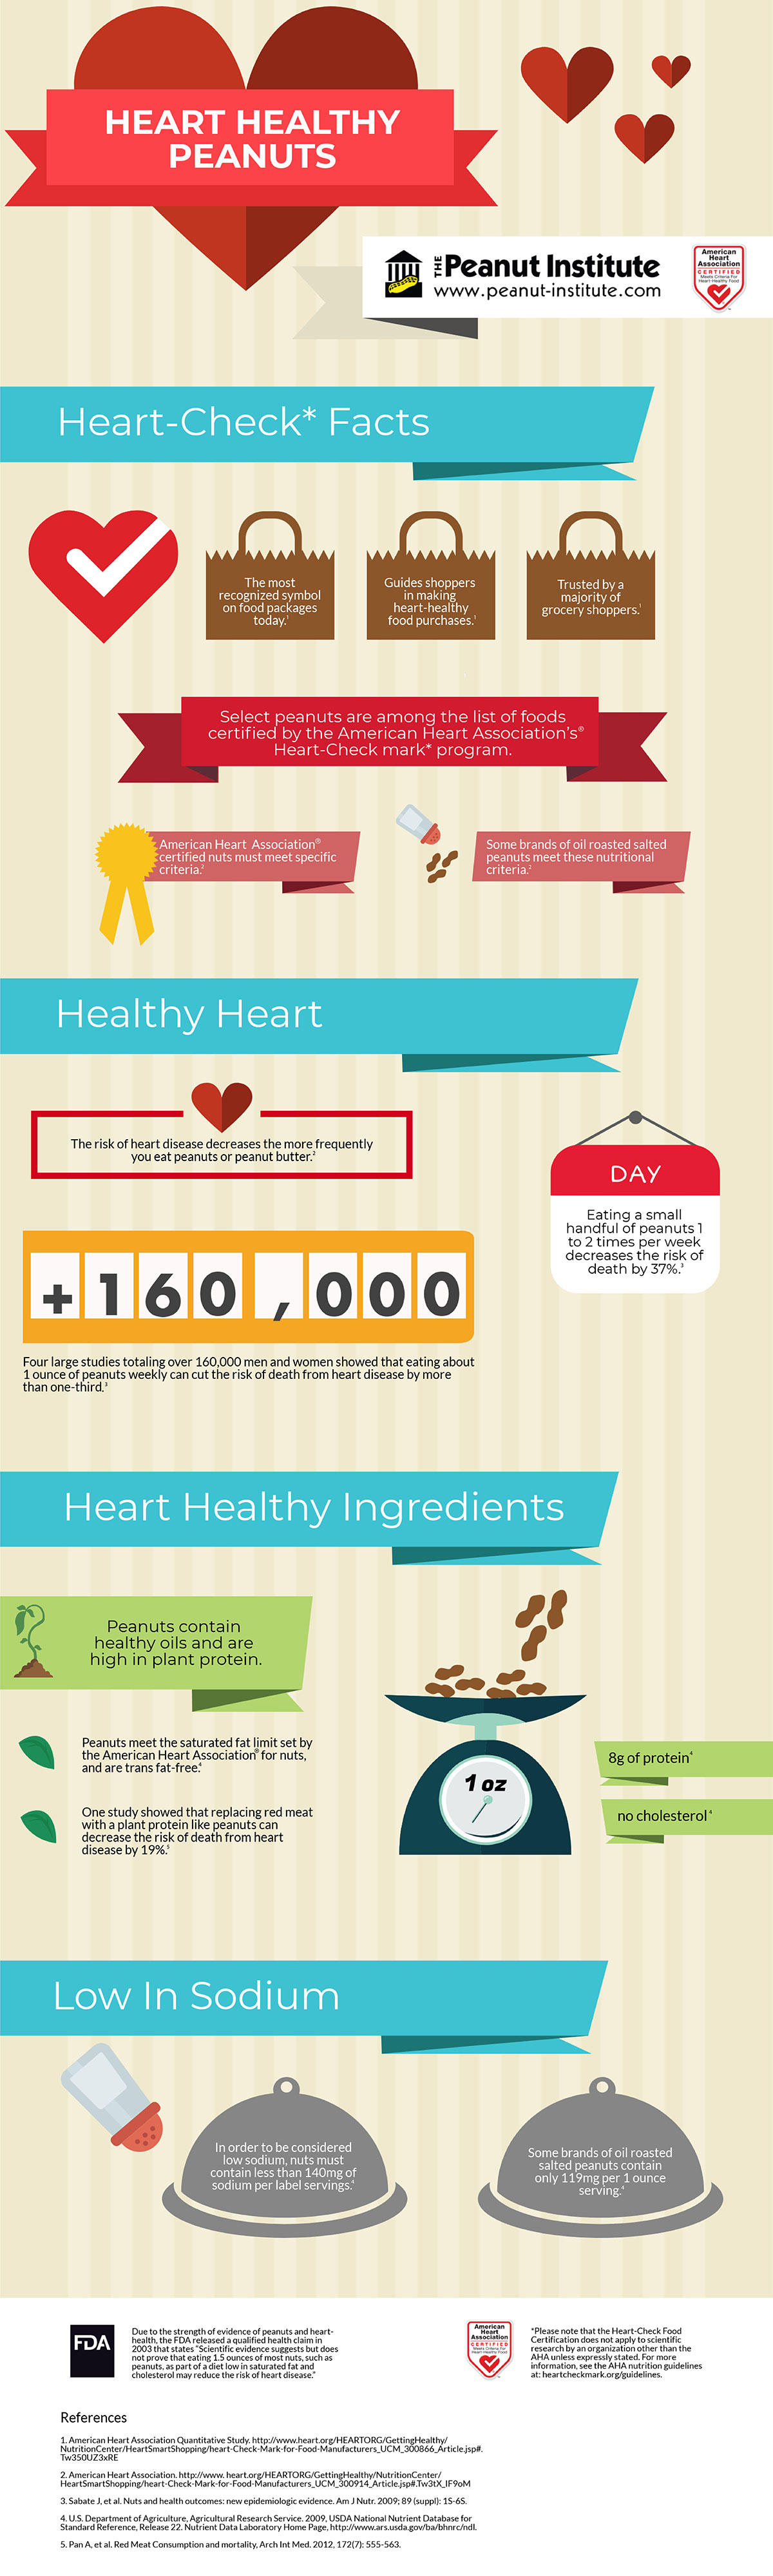 Peanuts Are Certified As Heart Healthy Food By The American Heart